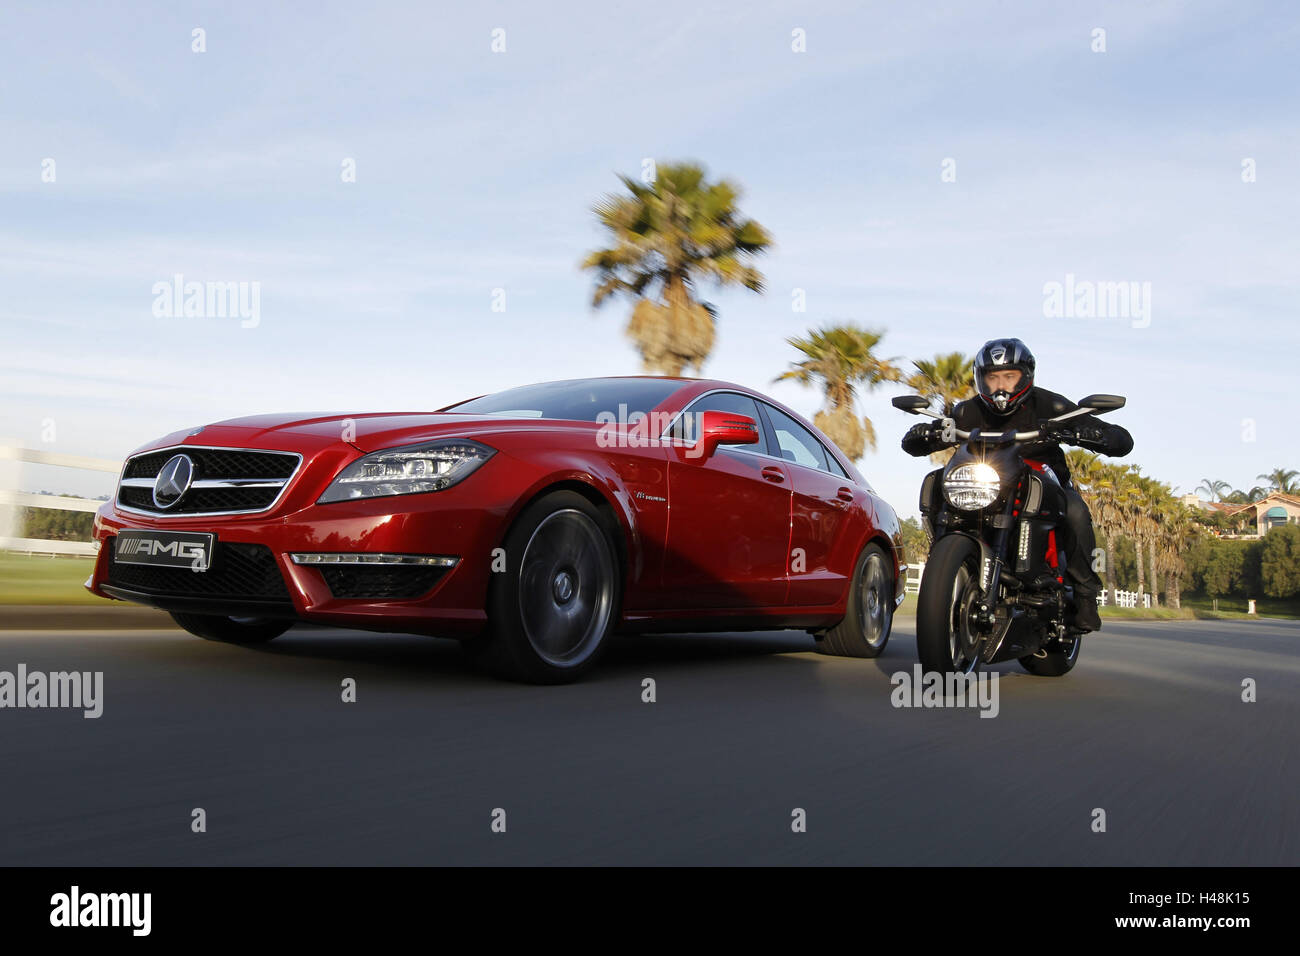 Motorcycle Ducati Diavel And Mercedes Cls 63 Amg Red Power Bike